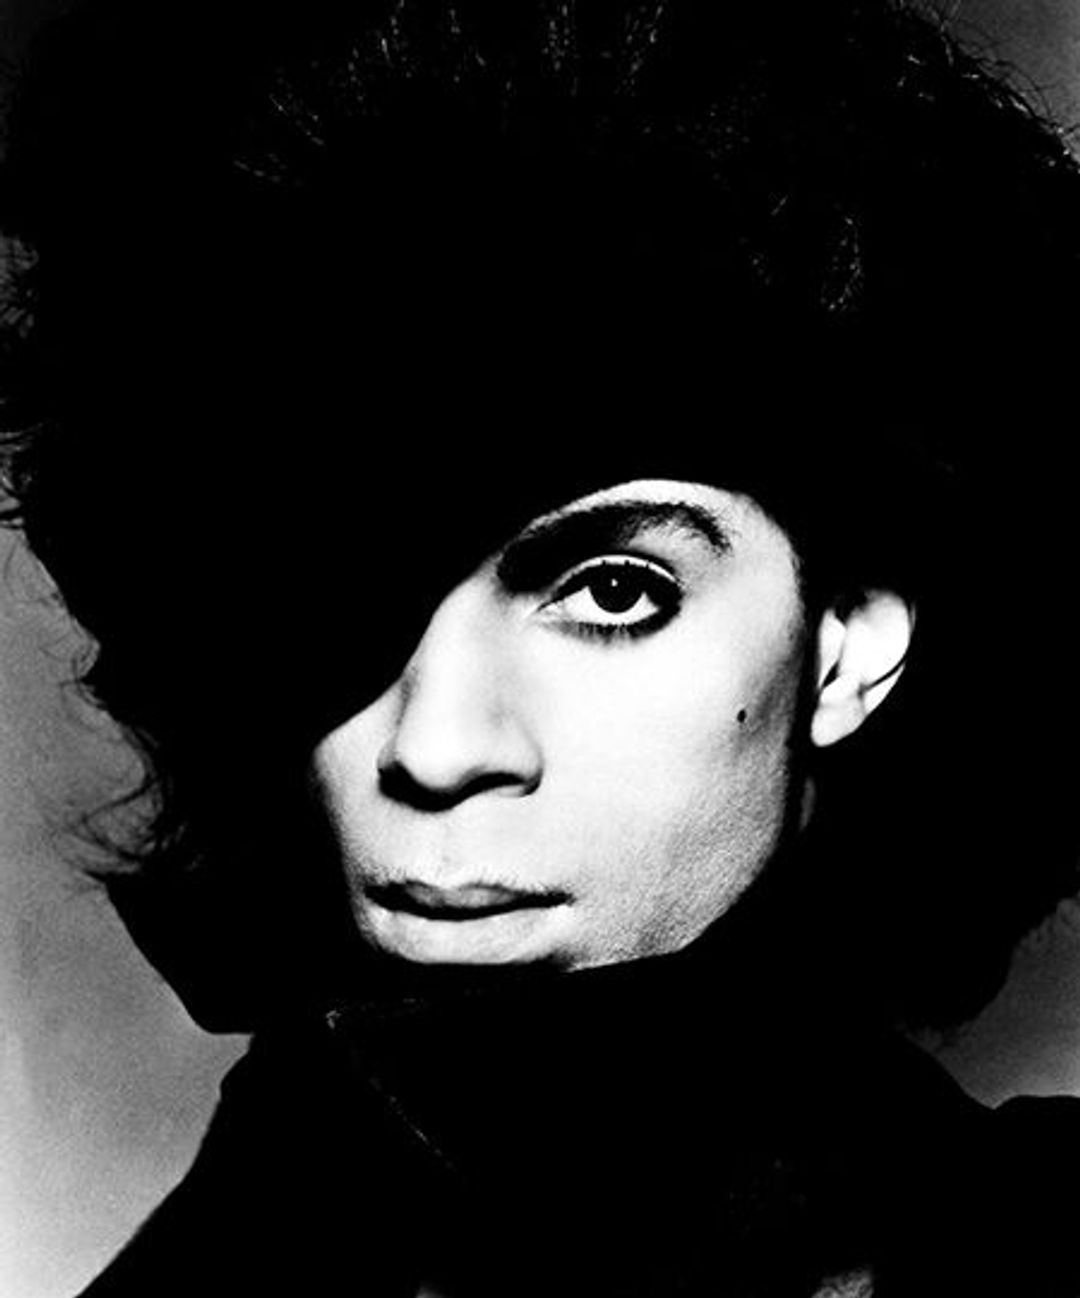 A heavily contrasted photo of Prince's face. A mole on his cheek. Stone cheekbones. He's possibly wearing a large black hat but the light's too dark to see.